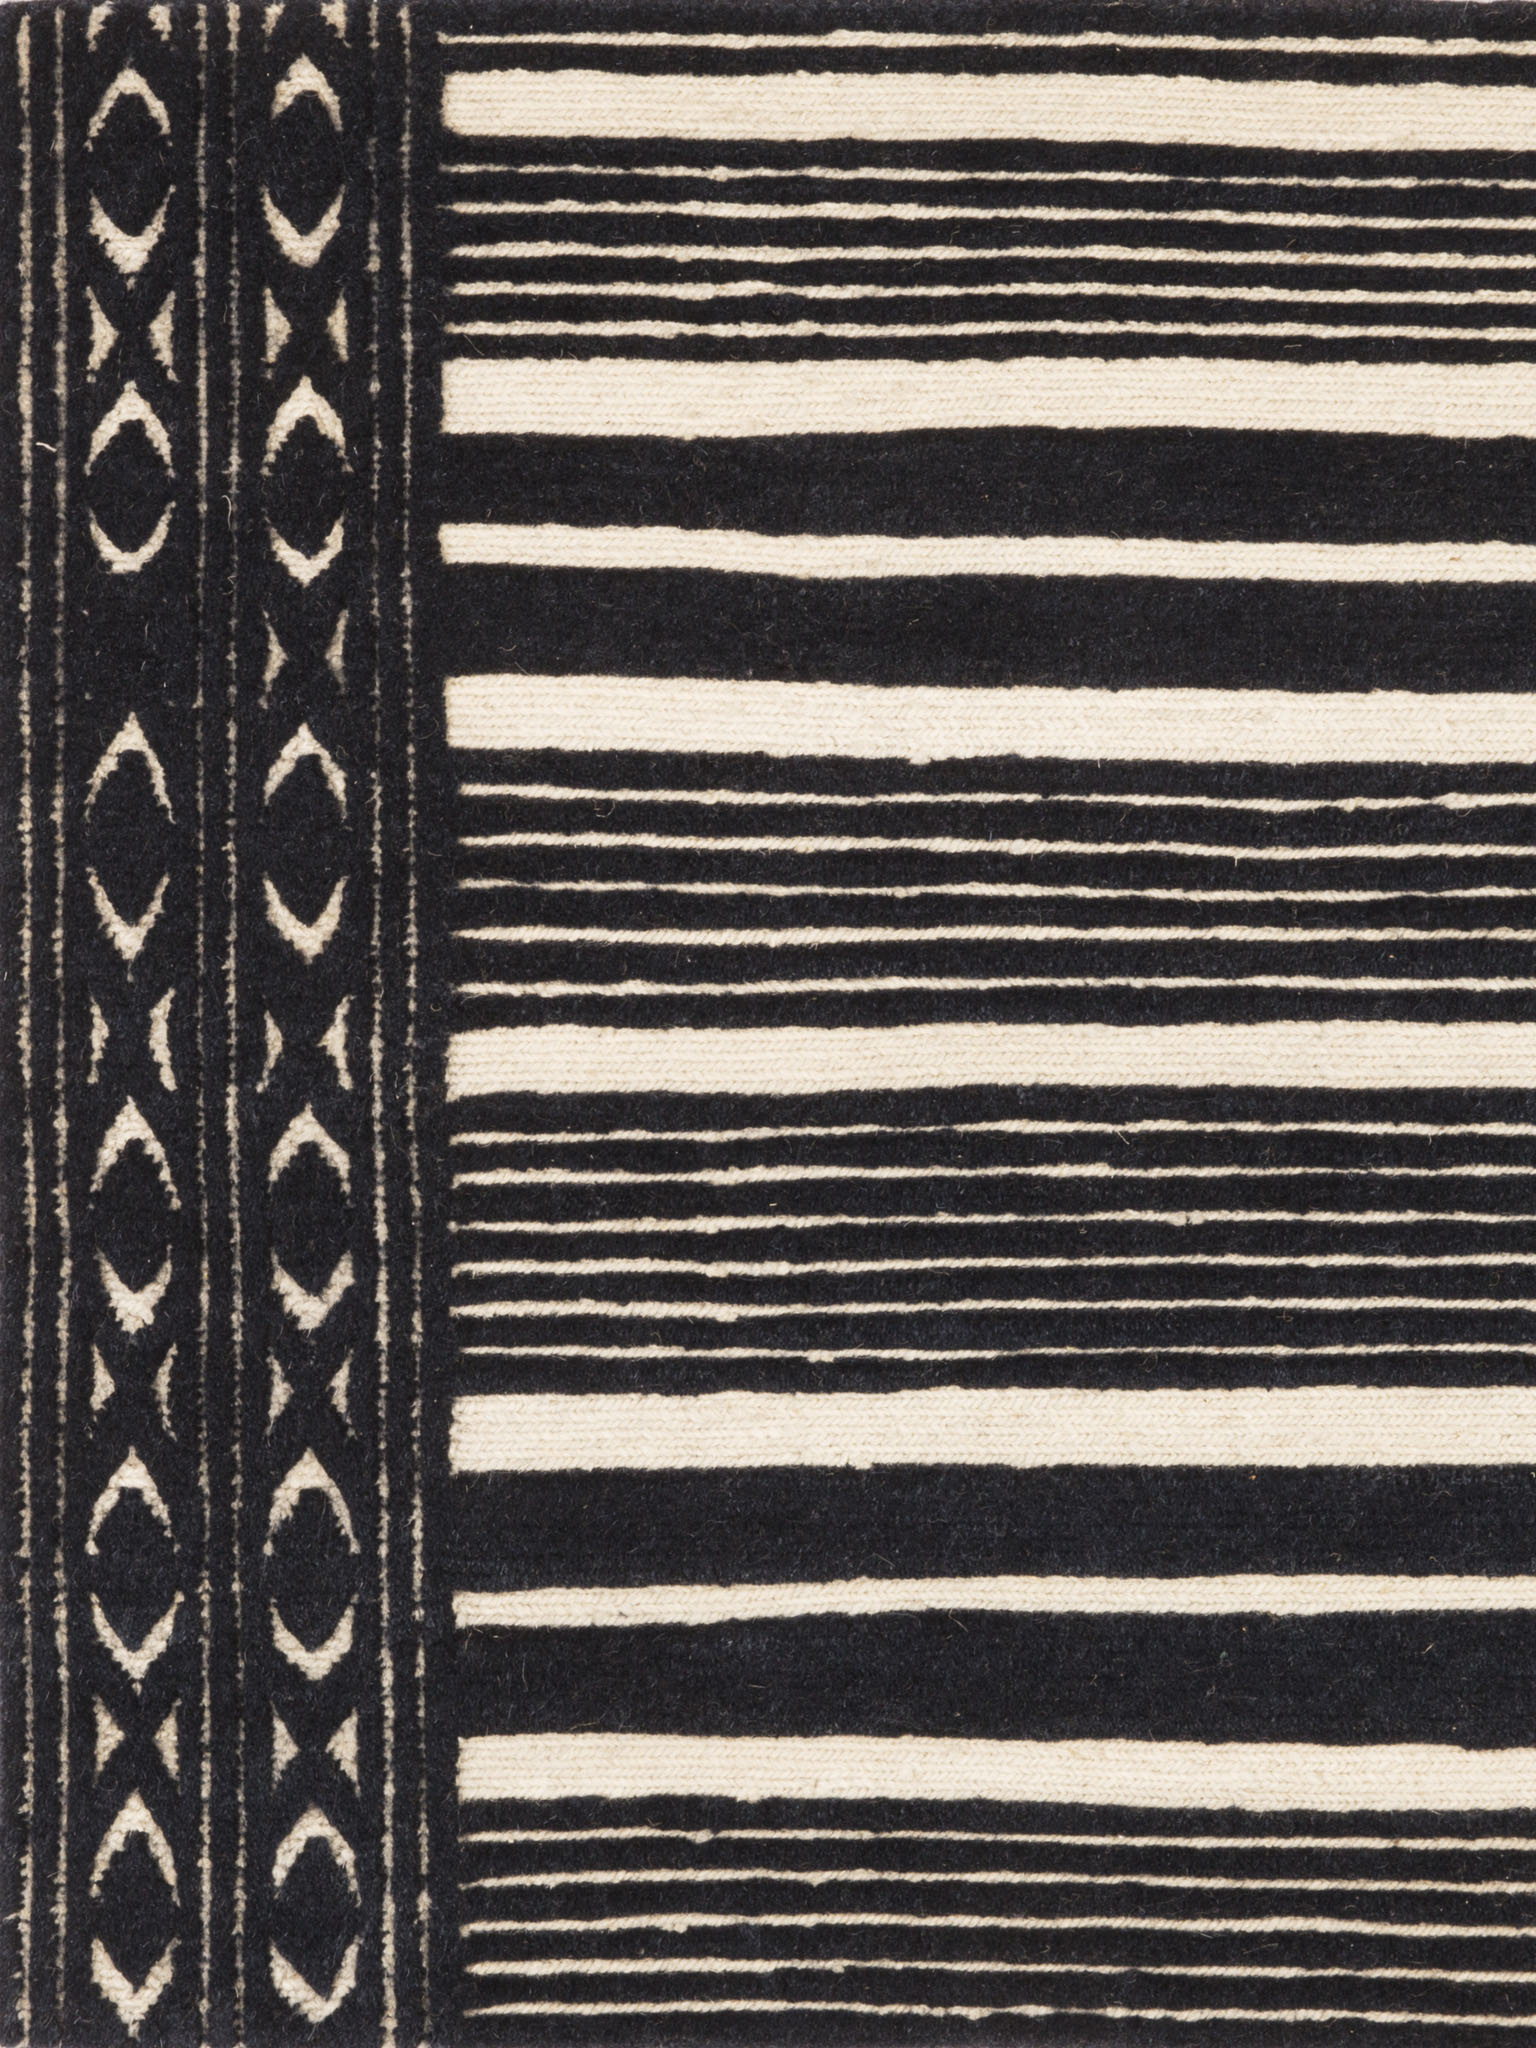 Knotted Ethnic Stripe VHH_12190-538